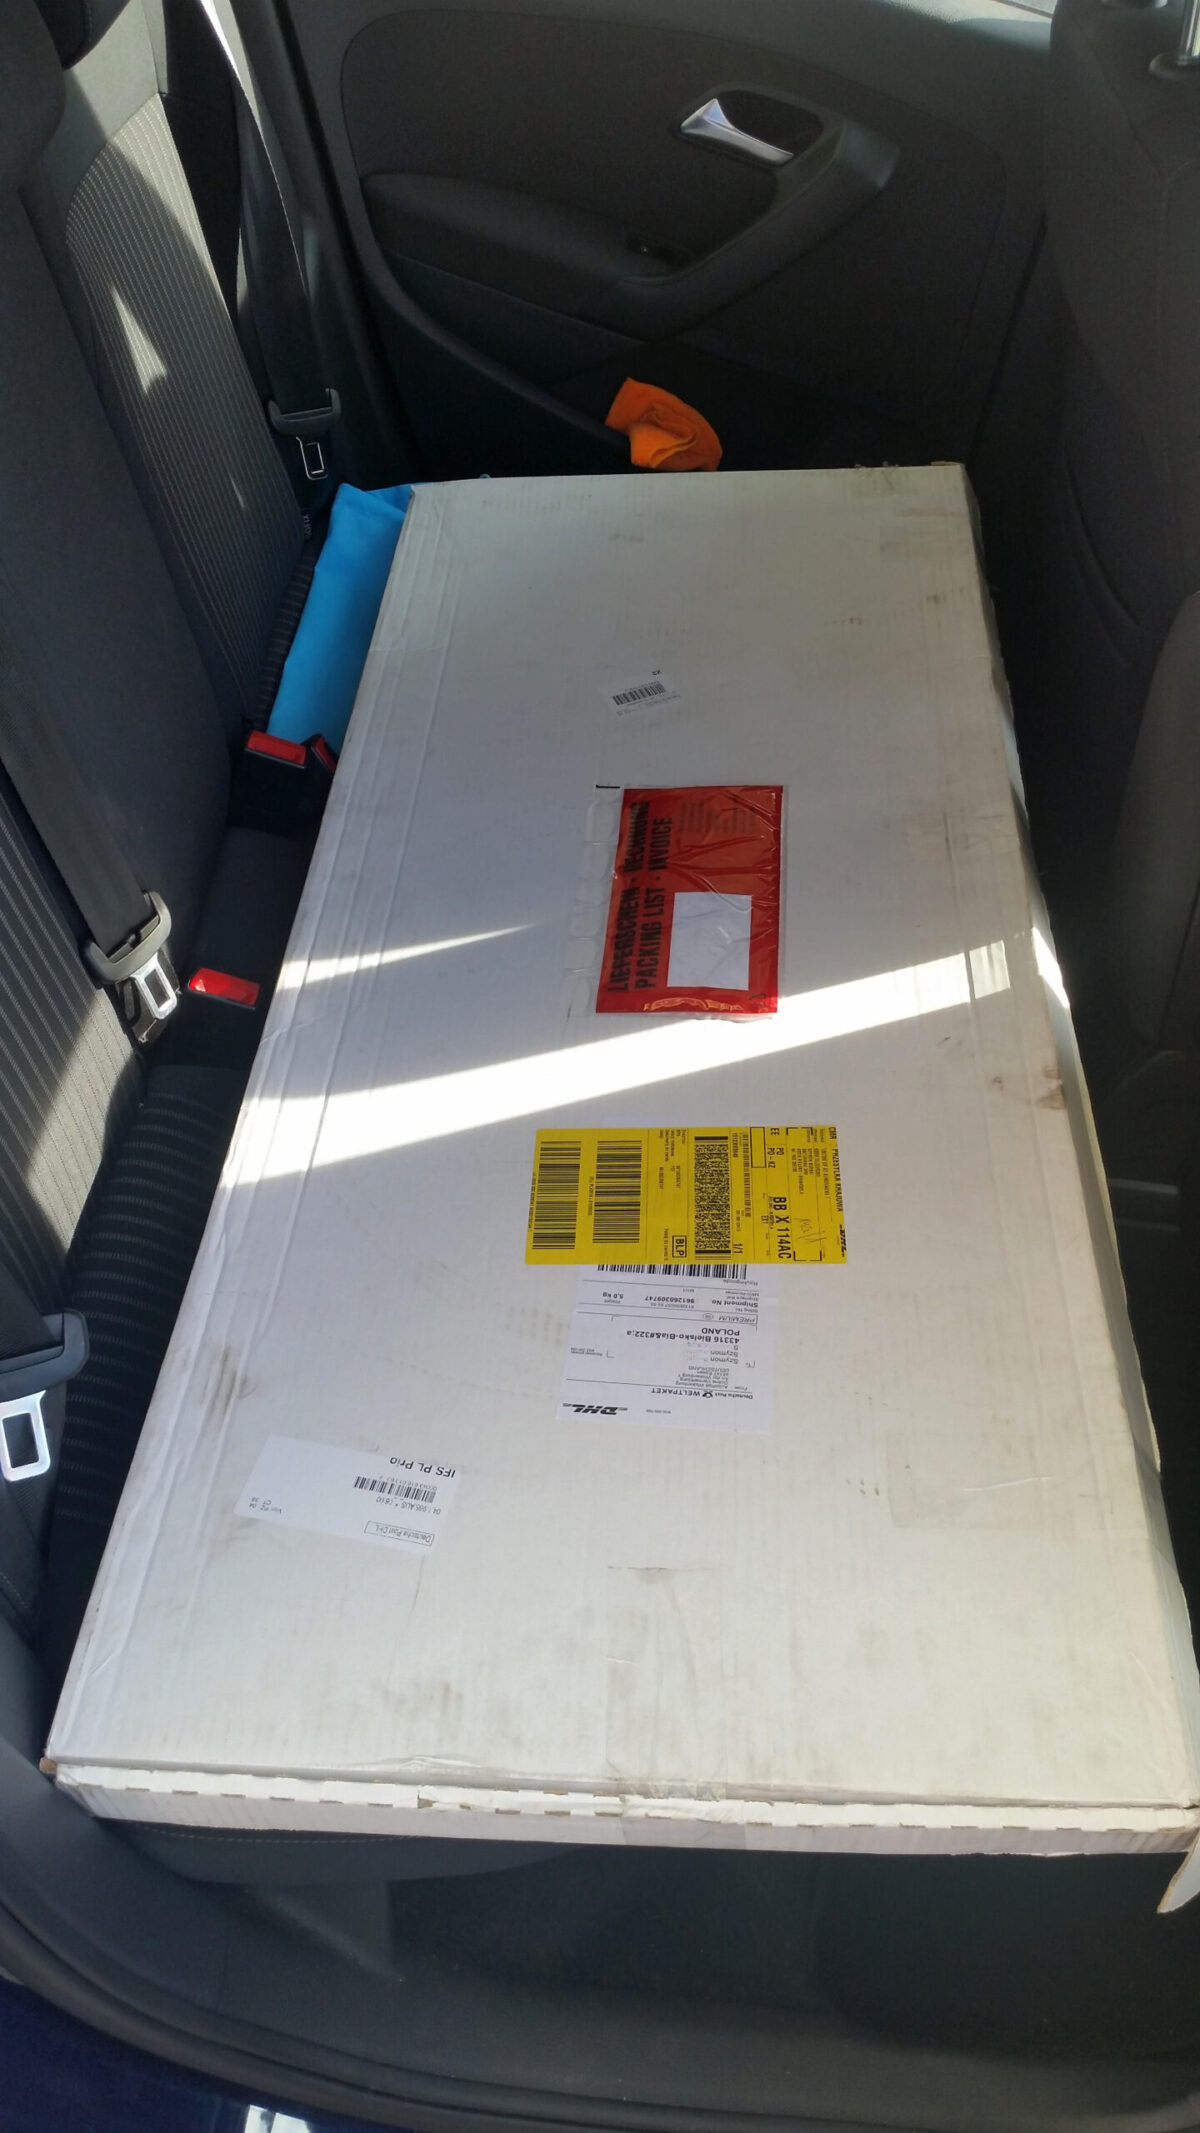 Curtains rear sunscreen OEM   2015 08 27 16.39 scaled